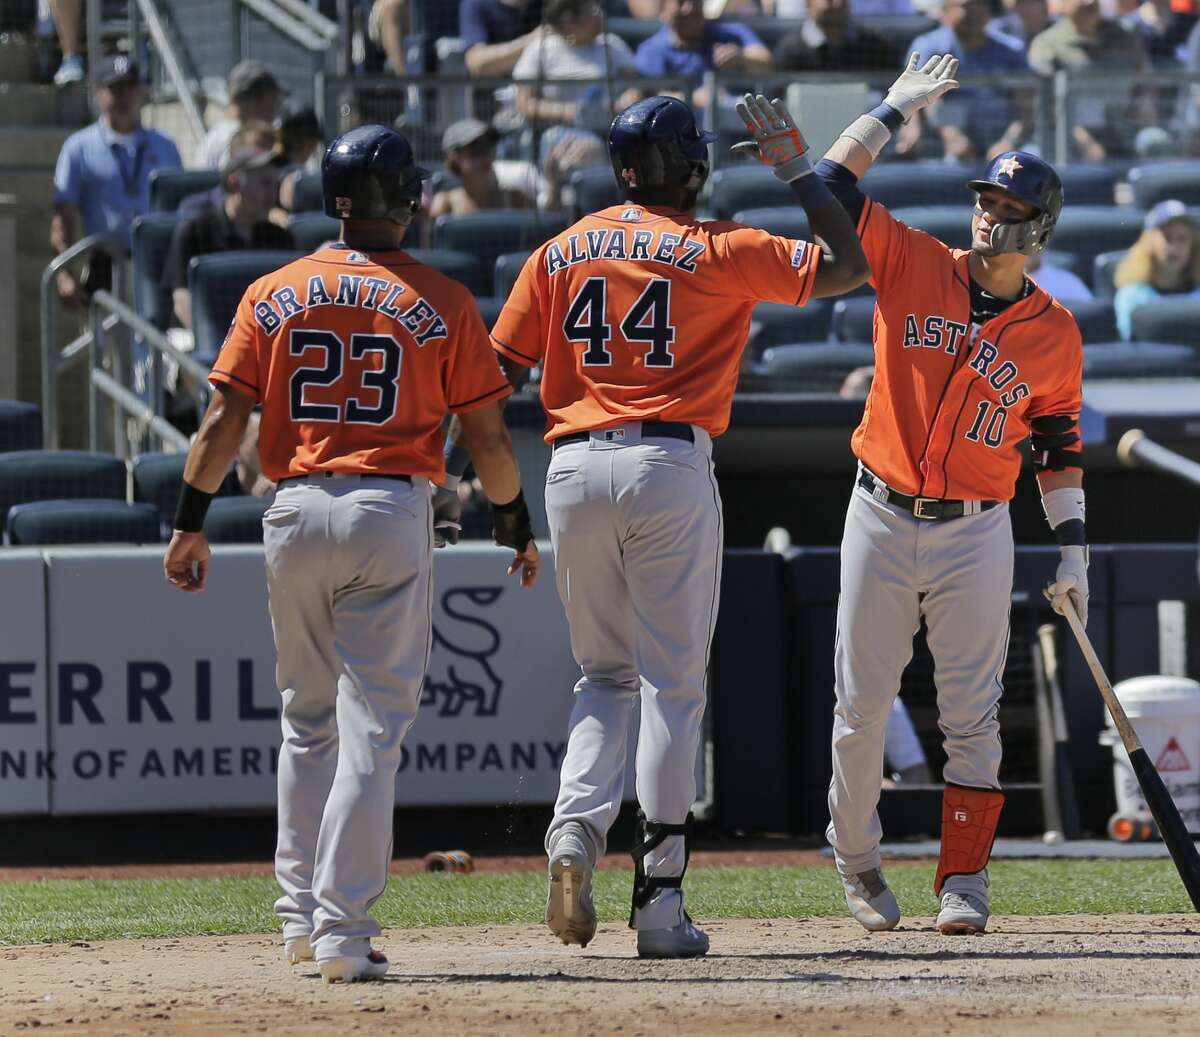 Houston Astros' Yordan Alvarez, center, celebrates his two-run home run with Yuli Gurriel, right, and Michael Brantley (23) during the fifth inning of a baseball game against the New York Yankees at Yankee Stadium, Sunday, June 23, 2019, in New York. (AP Photo/Seth Wenig)